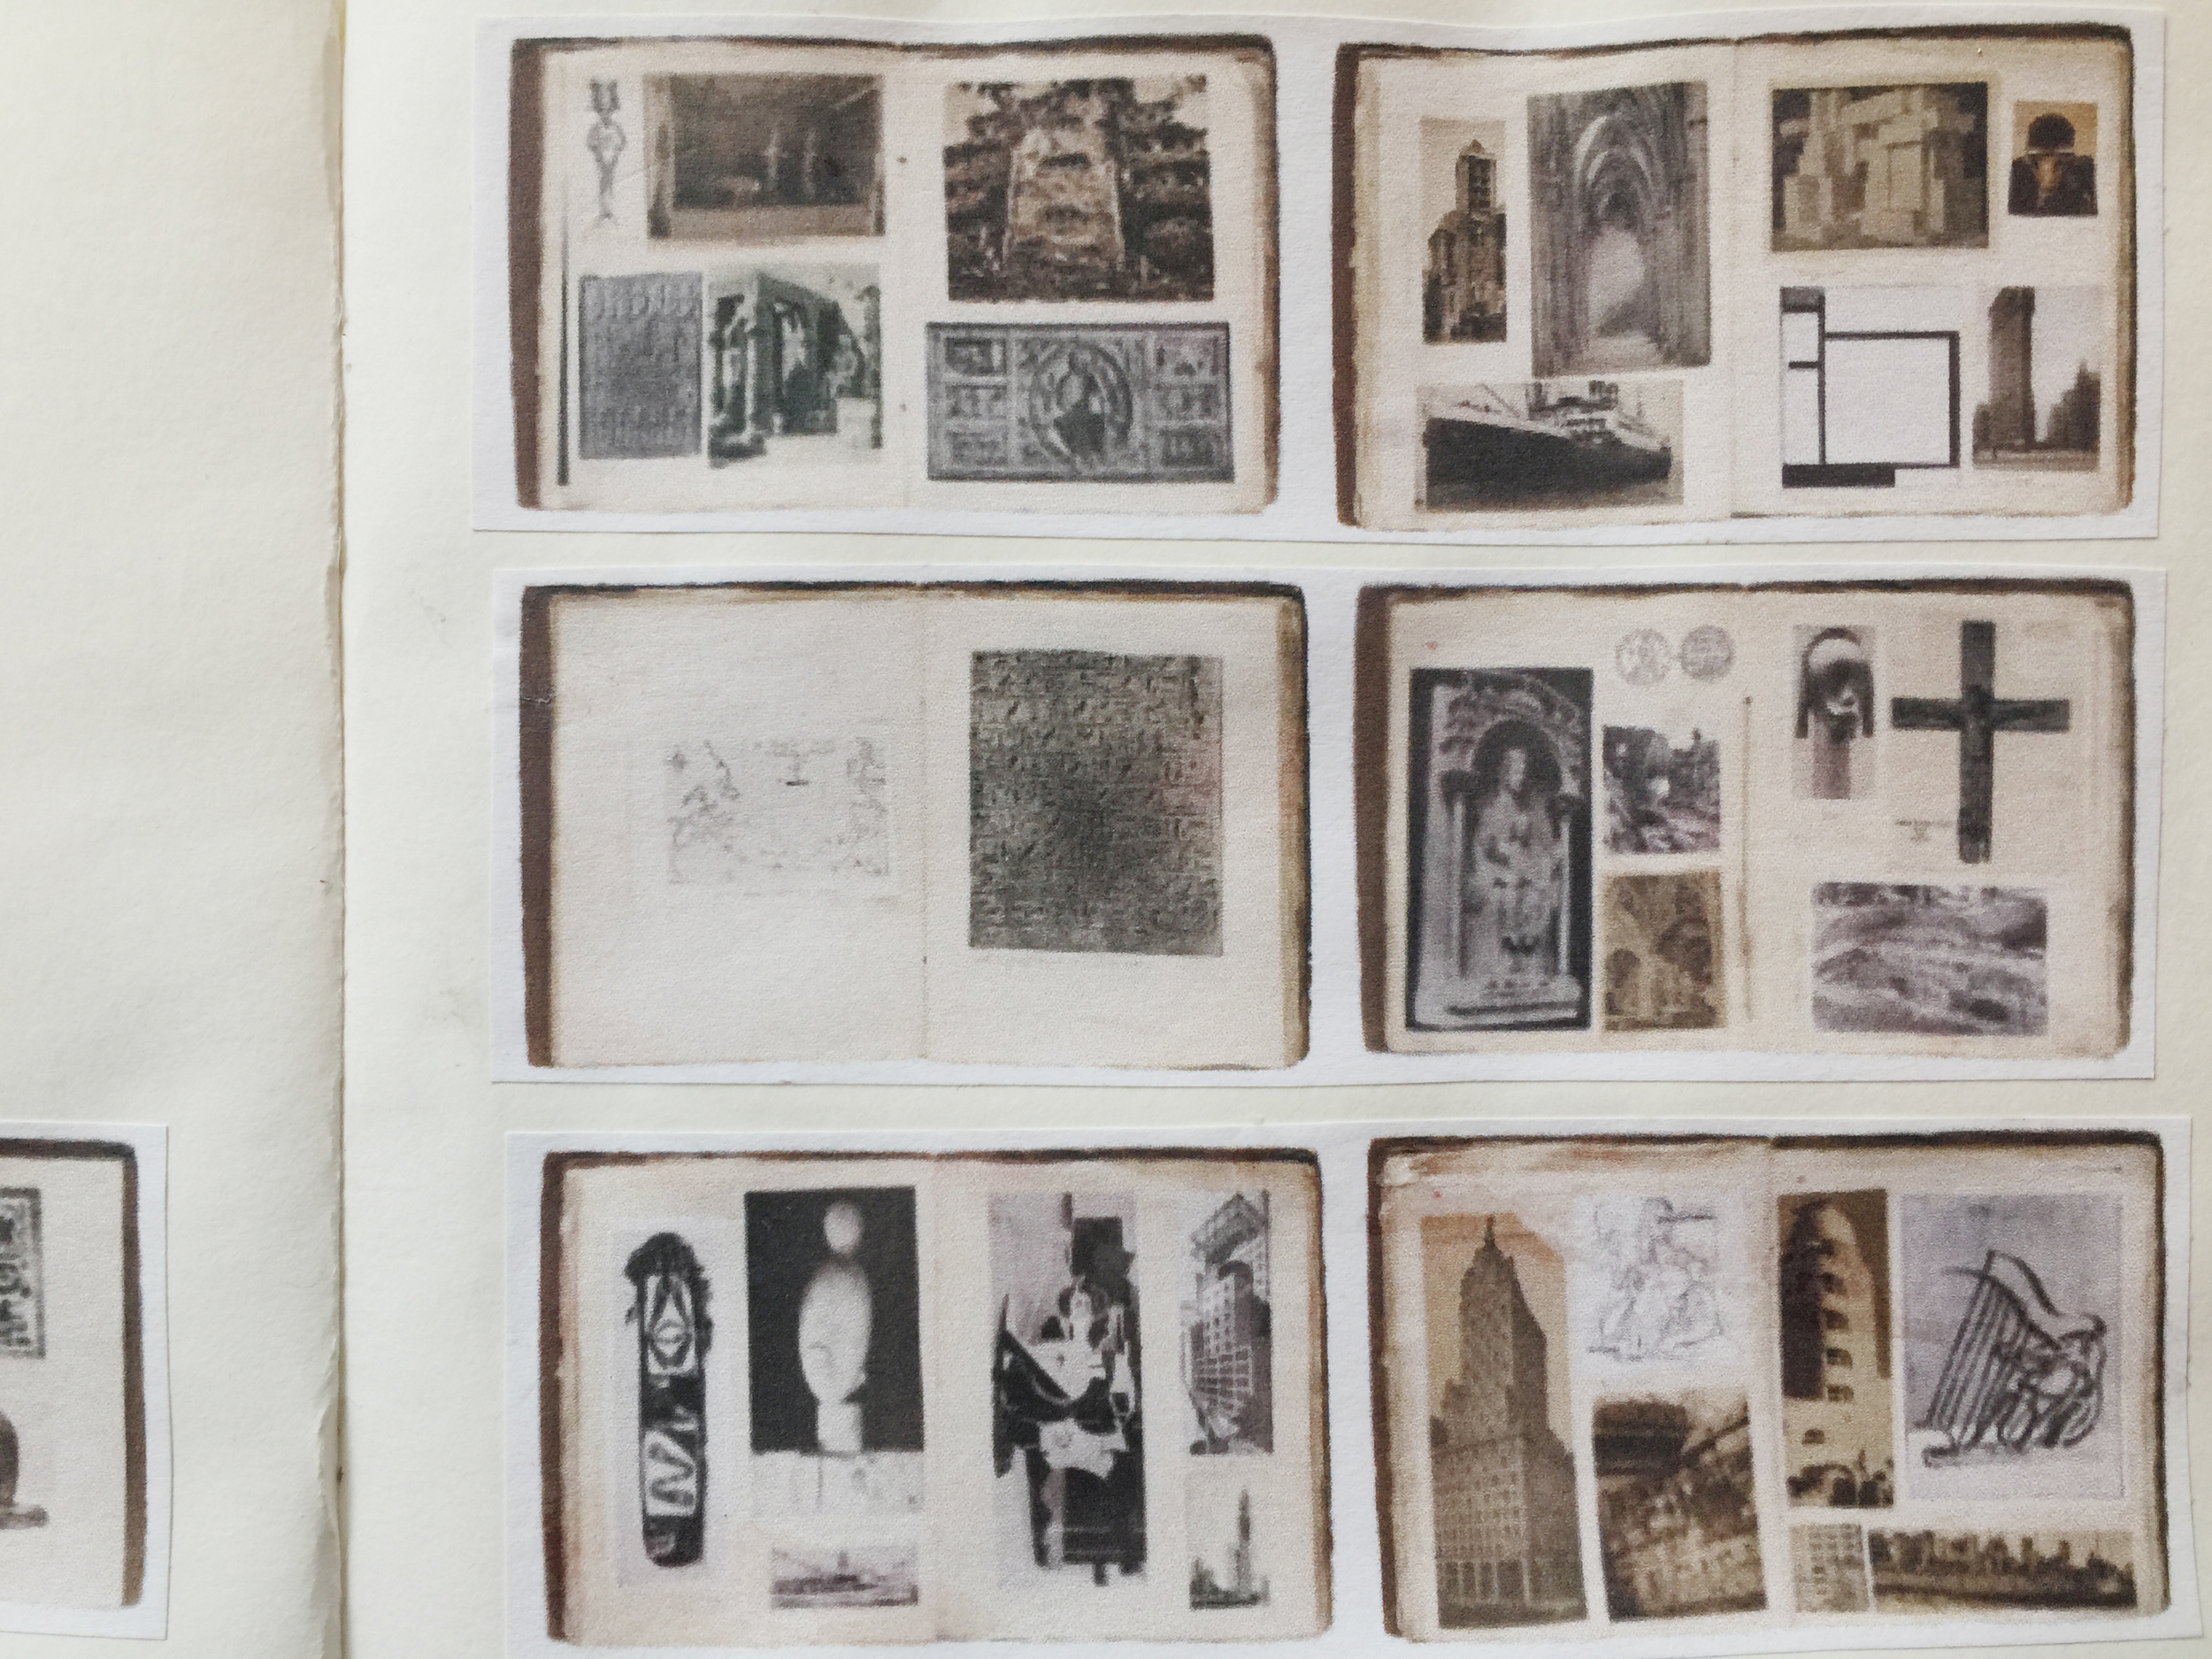 Images of Joaquín Torres-Garcia's notebooks pasted into my own journal.